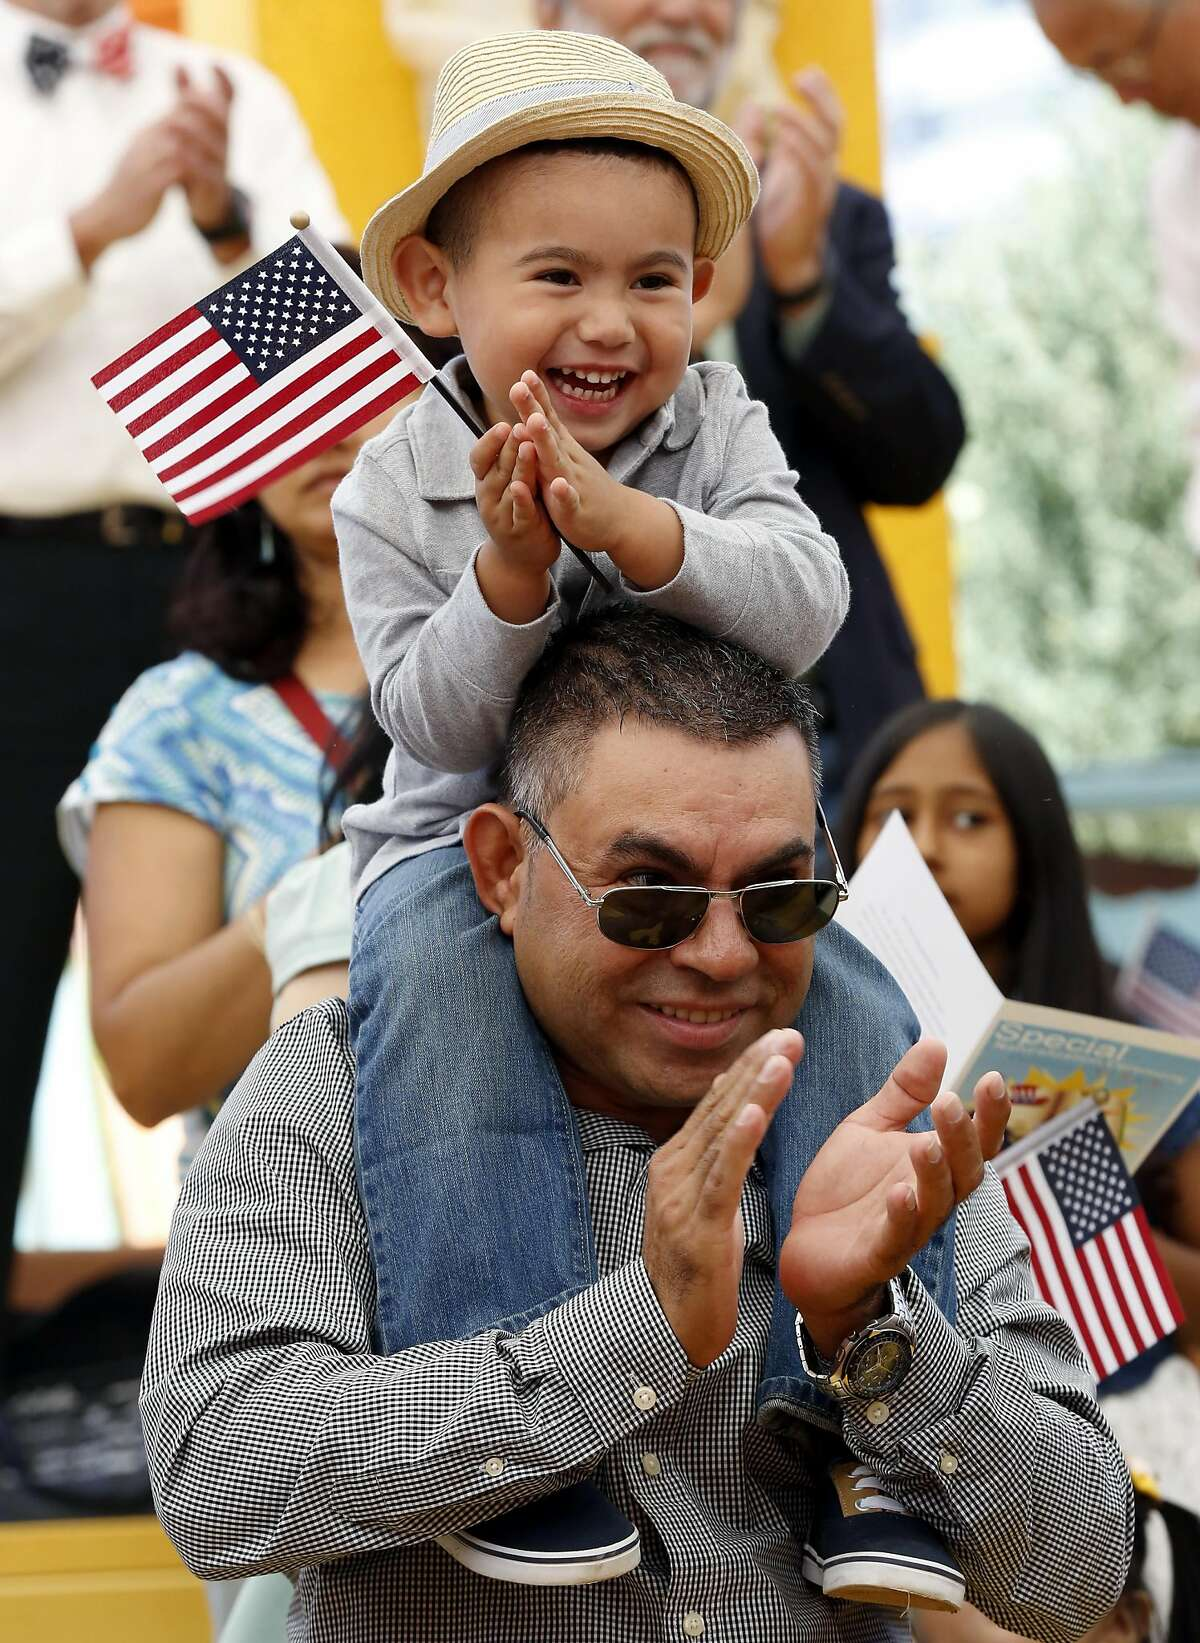 Wilber Quintanilla Jr., 3, sits on his father's shoulders during a naturalization ceremony at Children's Fairyland in Oakland, California, on Monday, August 1, 2016.